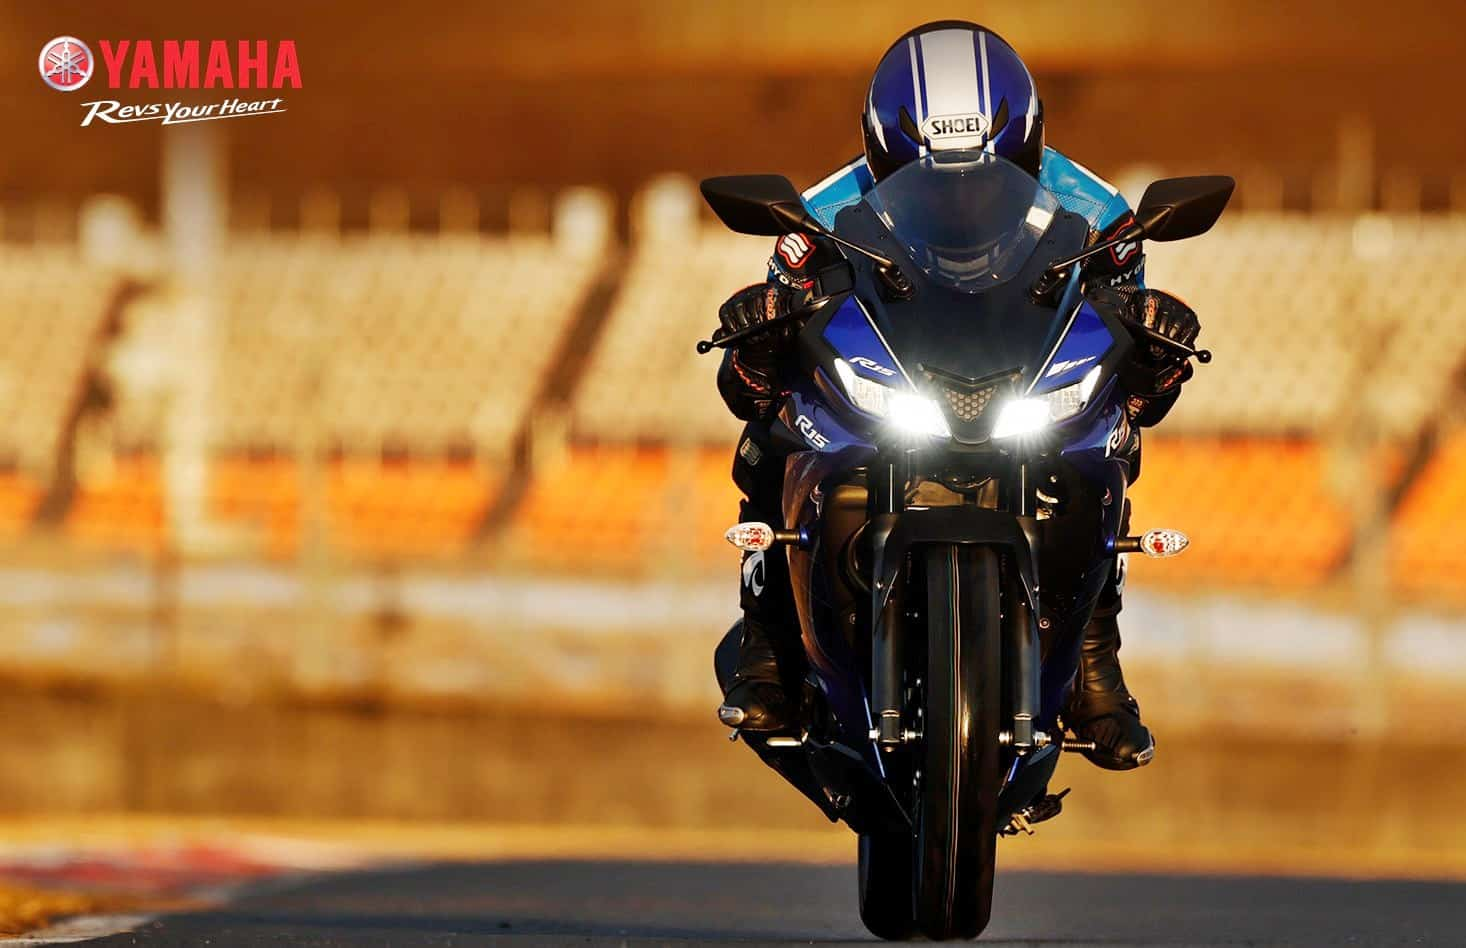 all you need to know about the newly launched yamaha r15